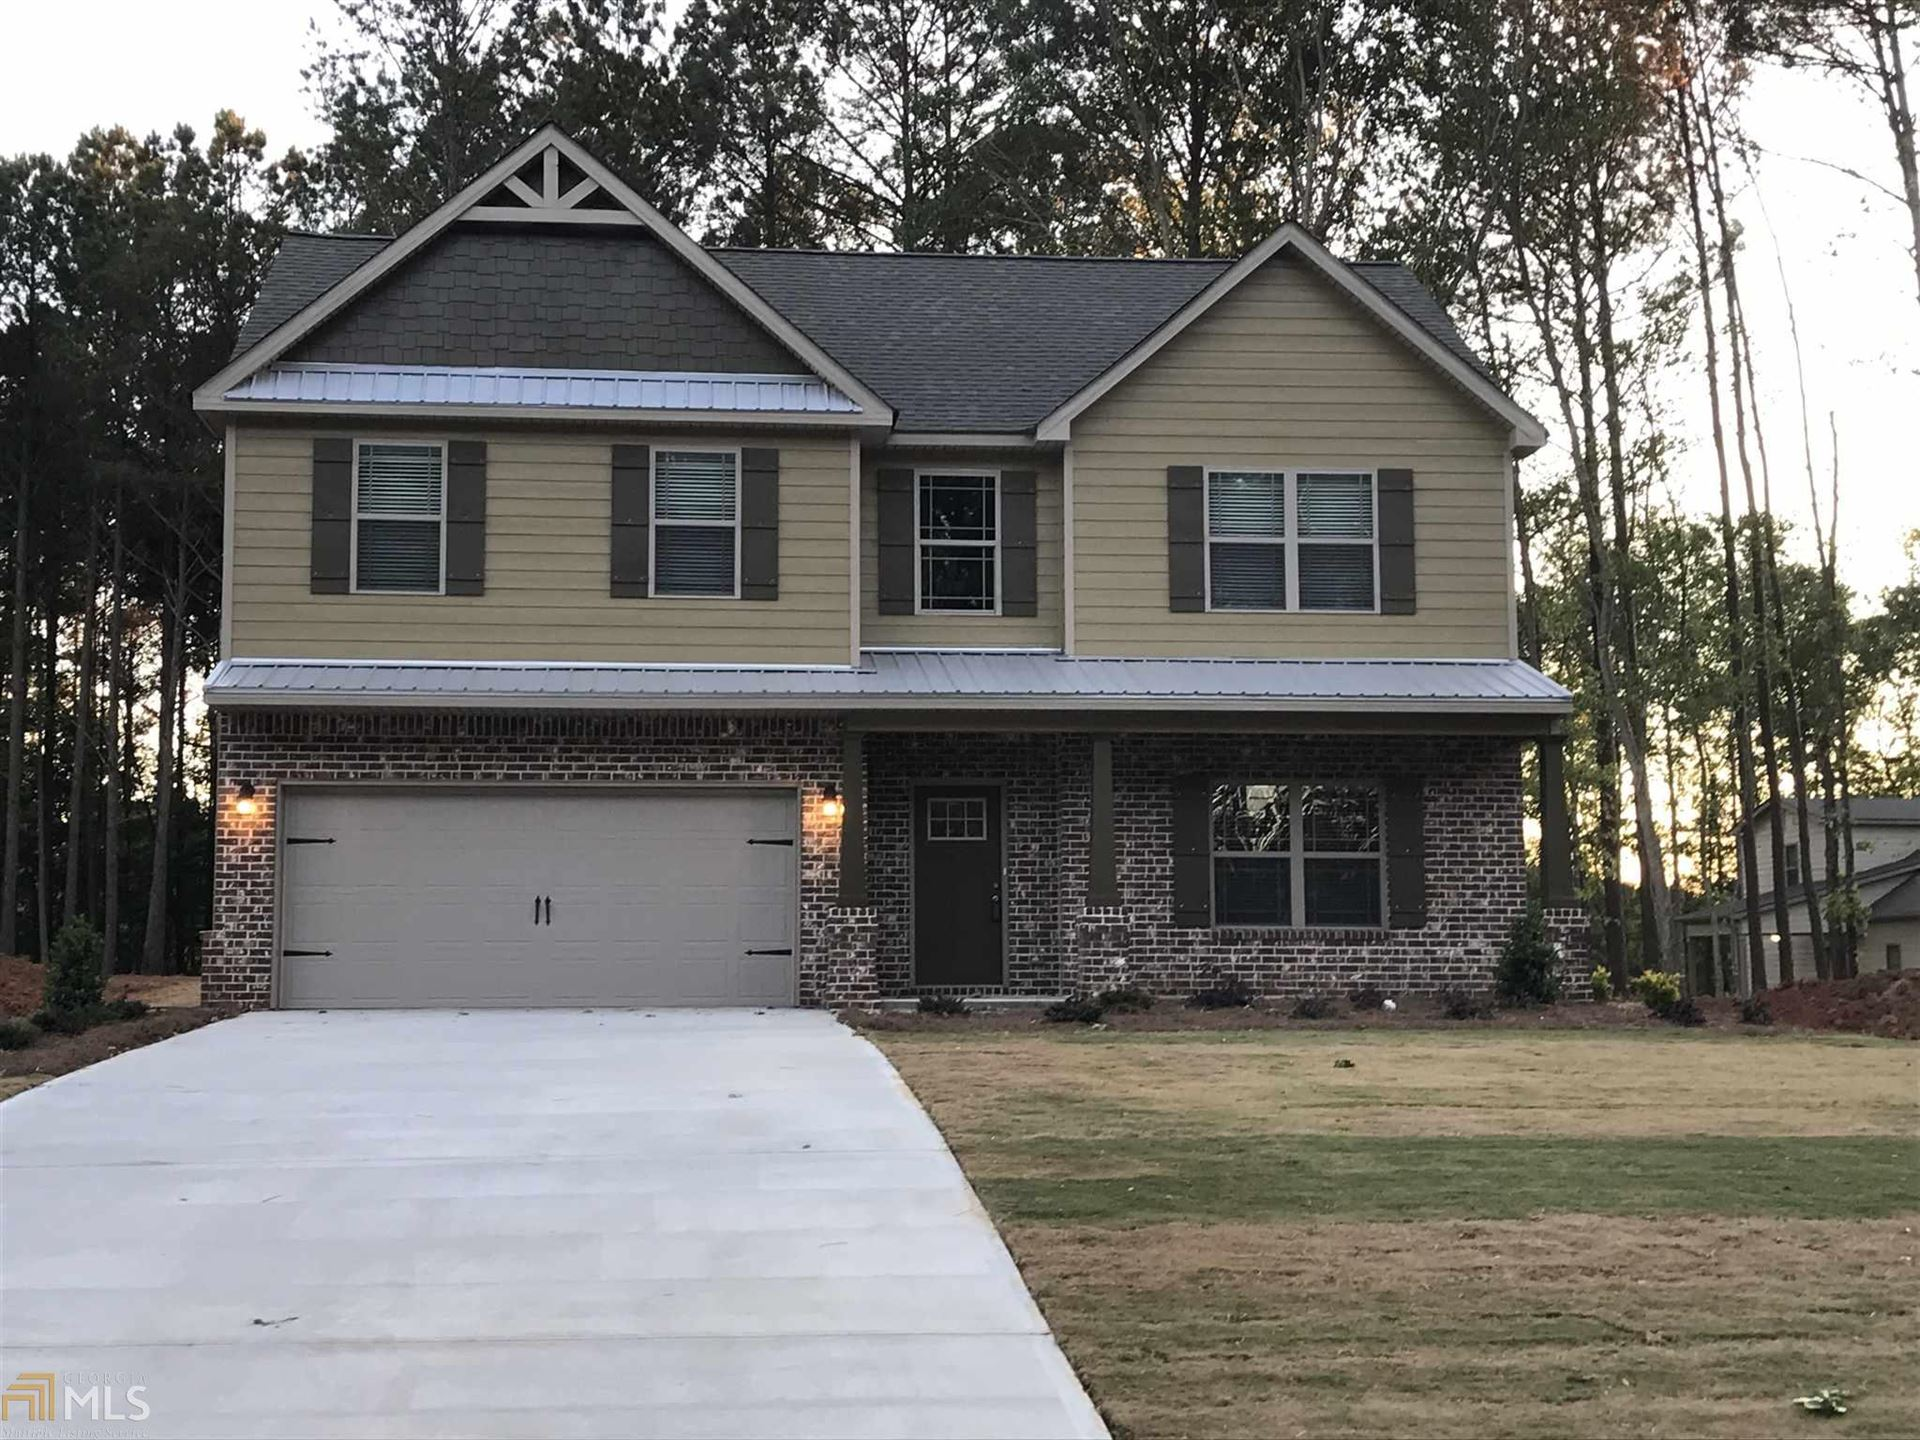 1203 Coldwater Ct, Griffin, GA 30224 - #: 8757746